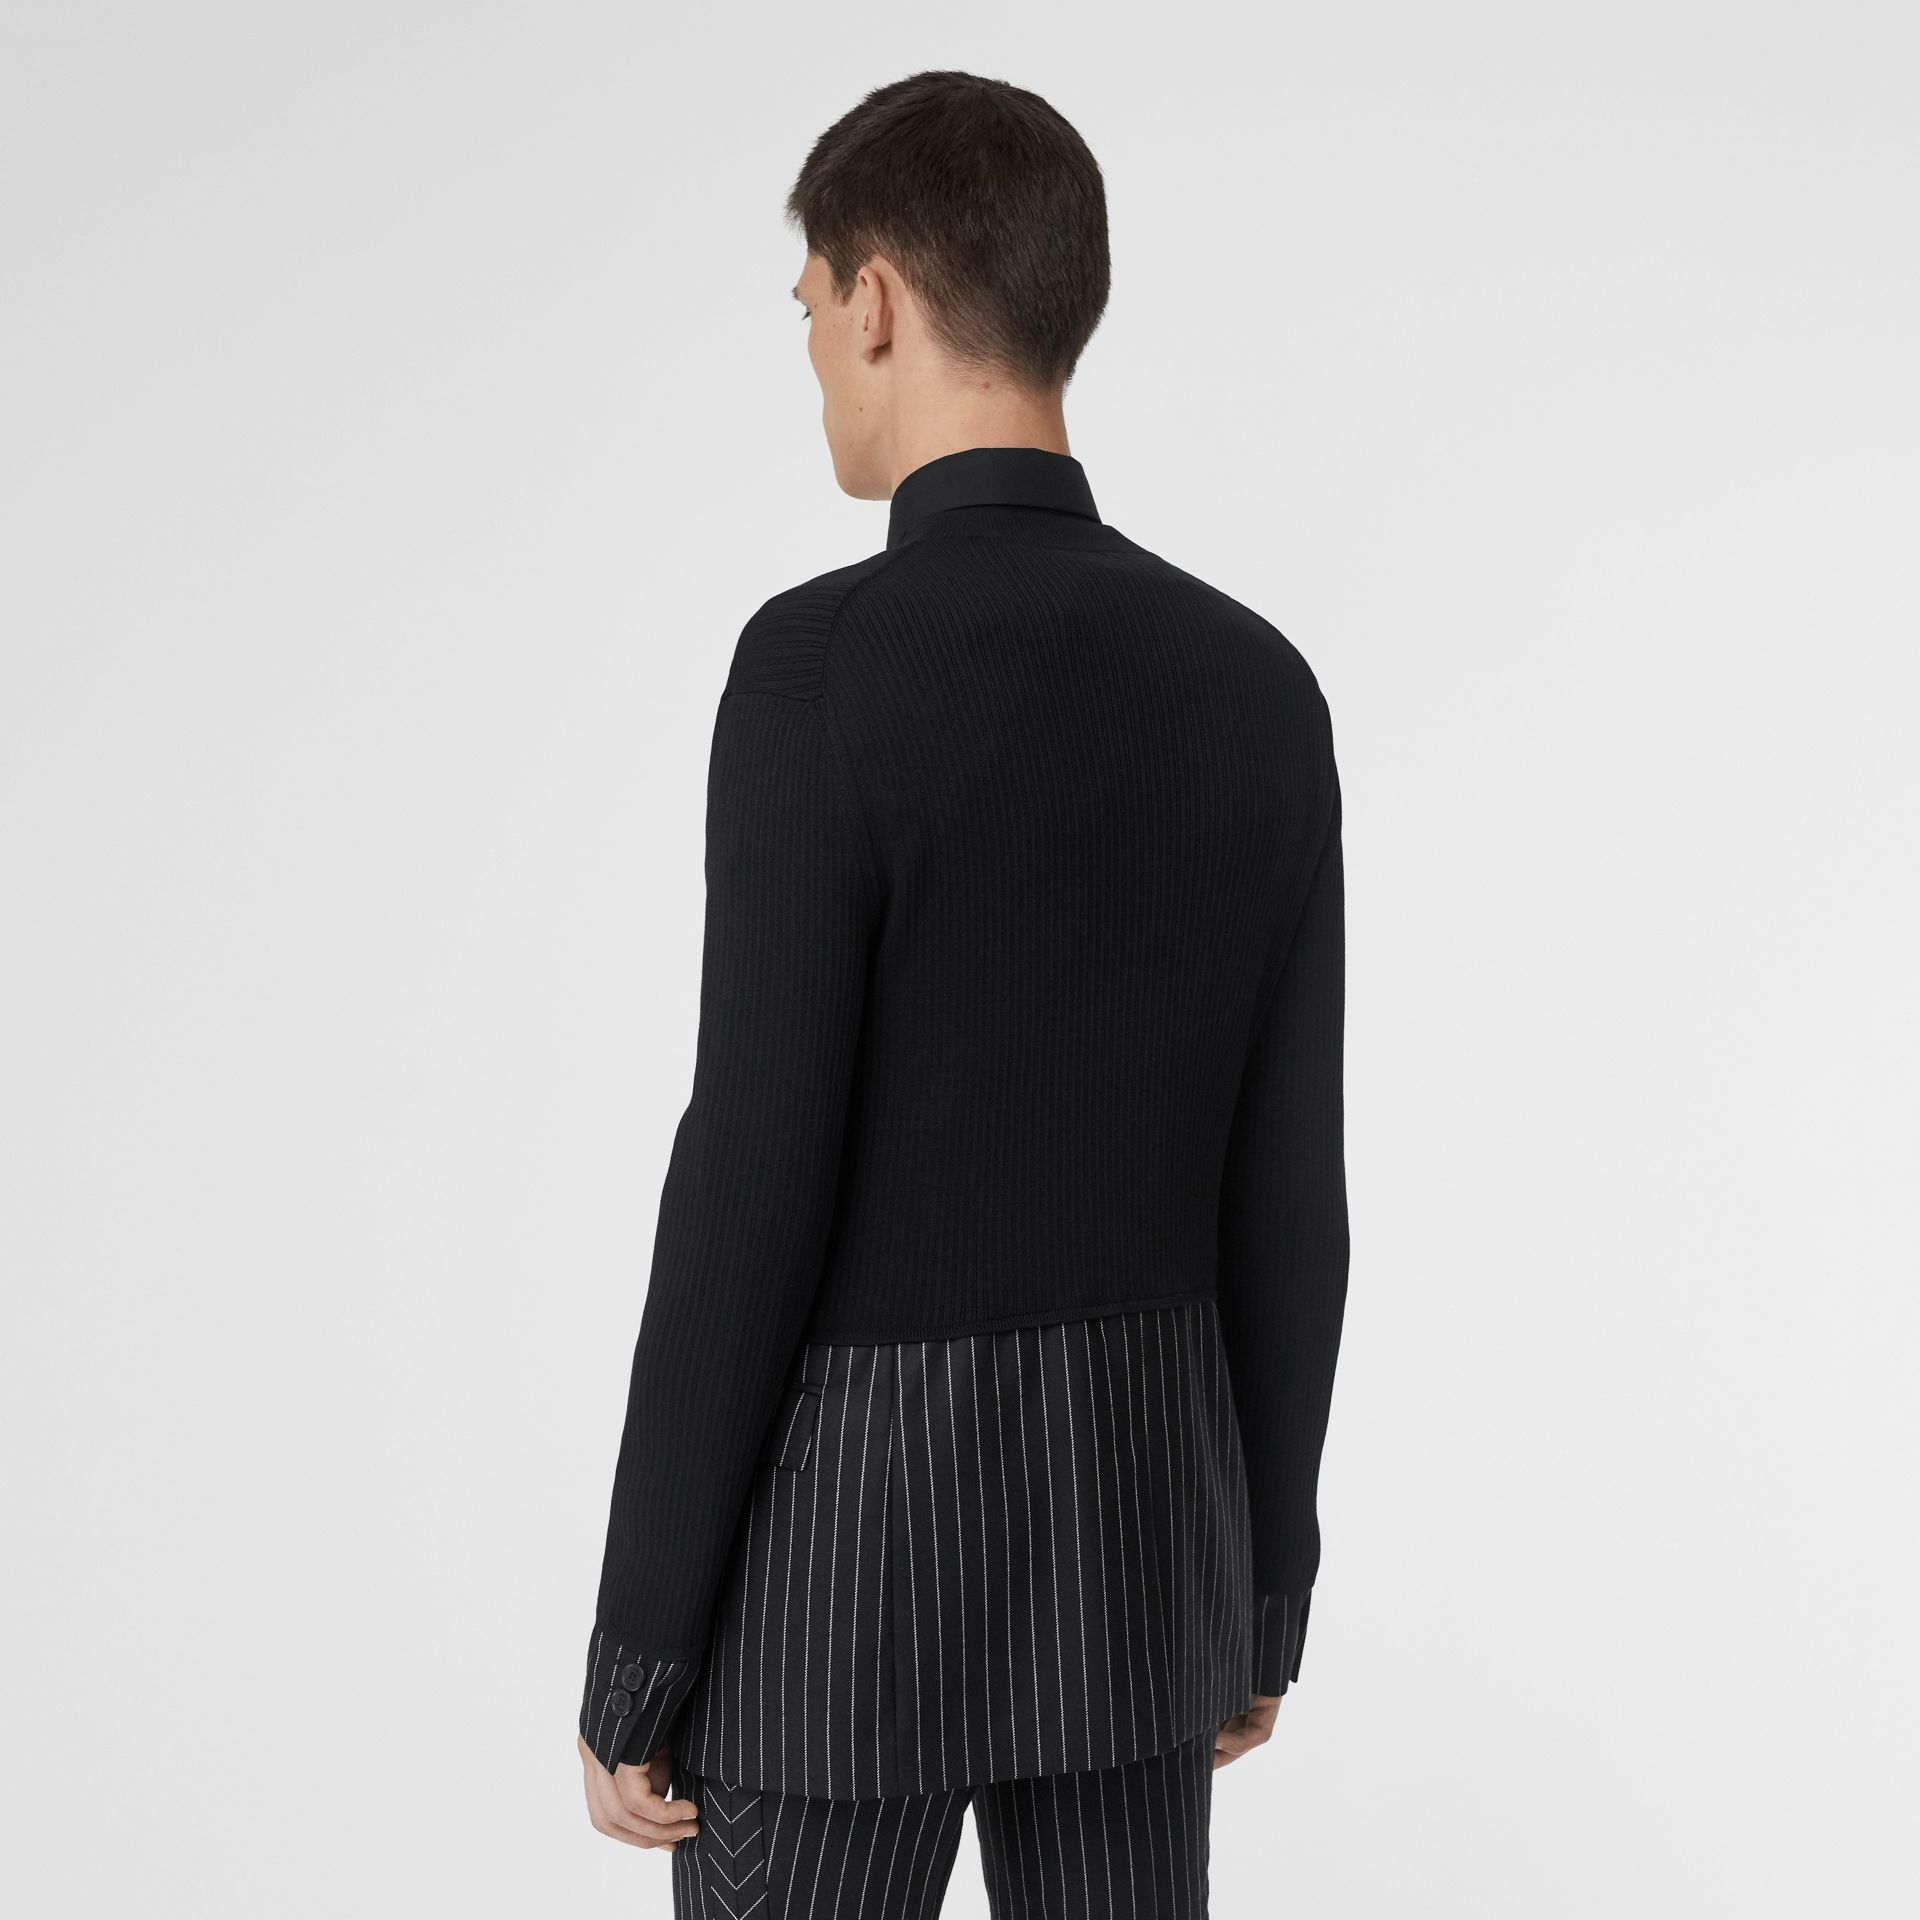 Tailored Panel Rib Knit Silk Blend Sweater in Black | Burberry United Kingdom - gallery image 2